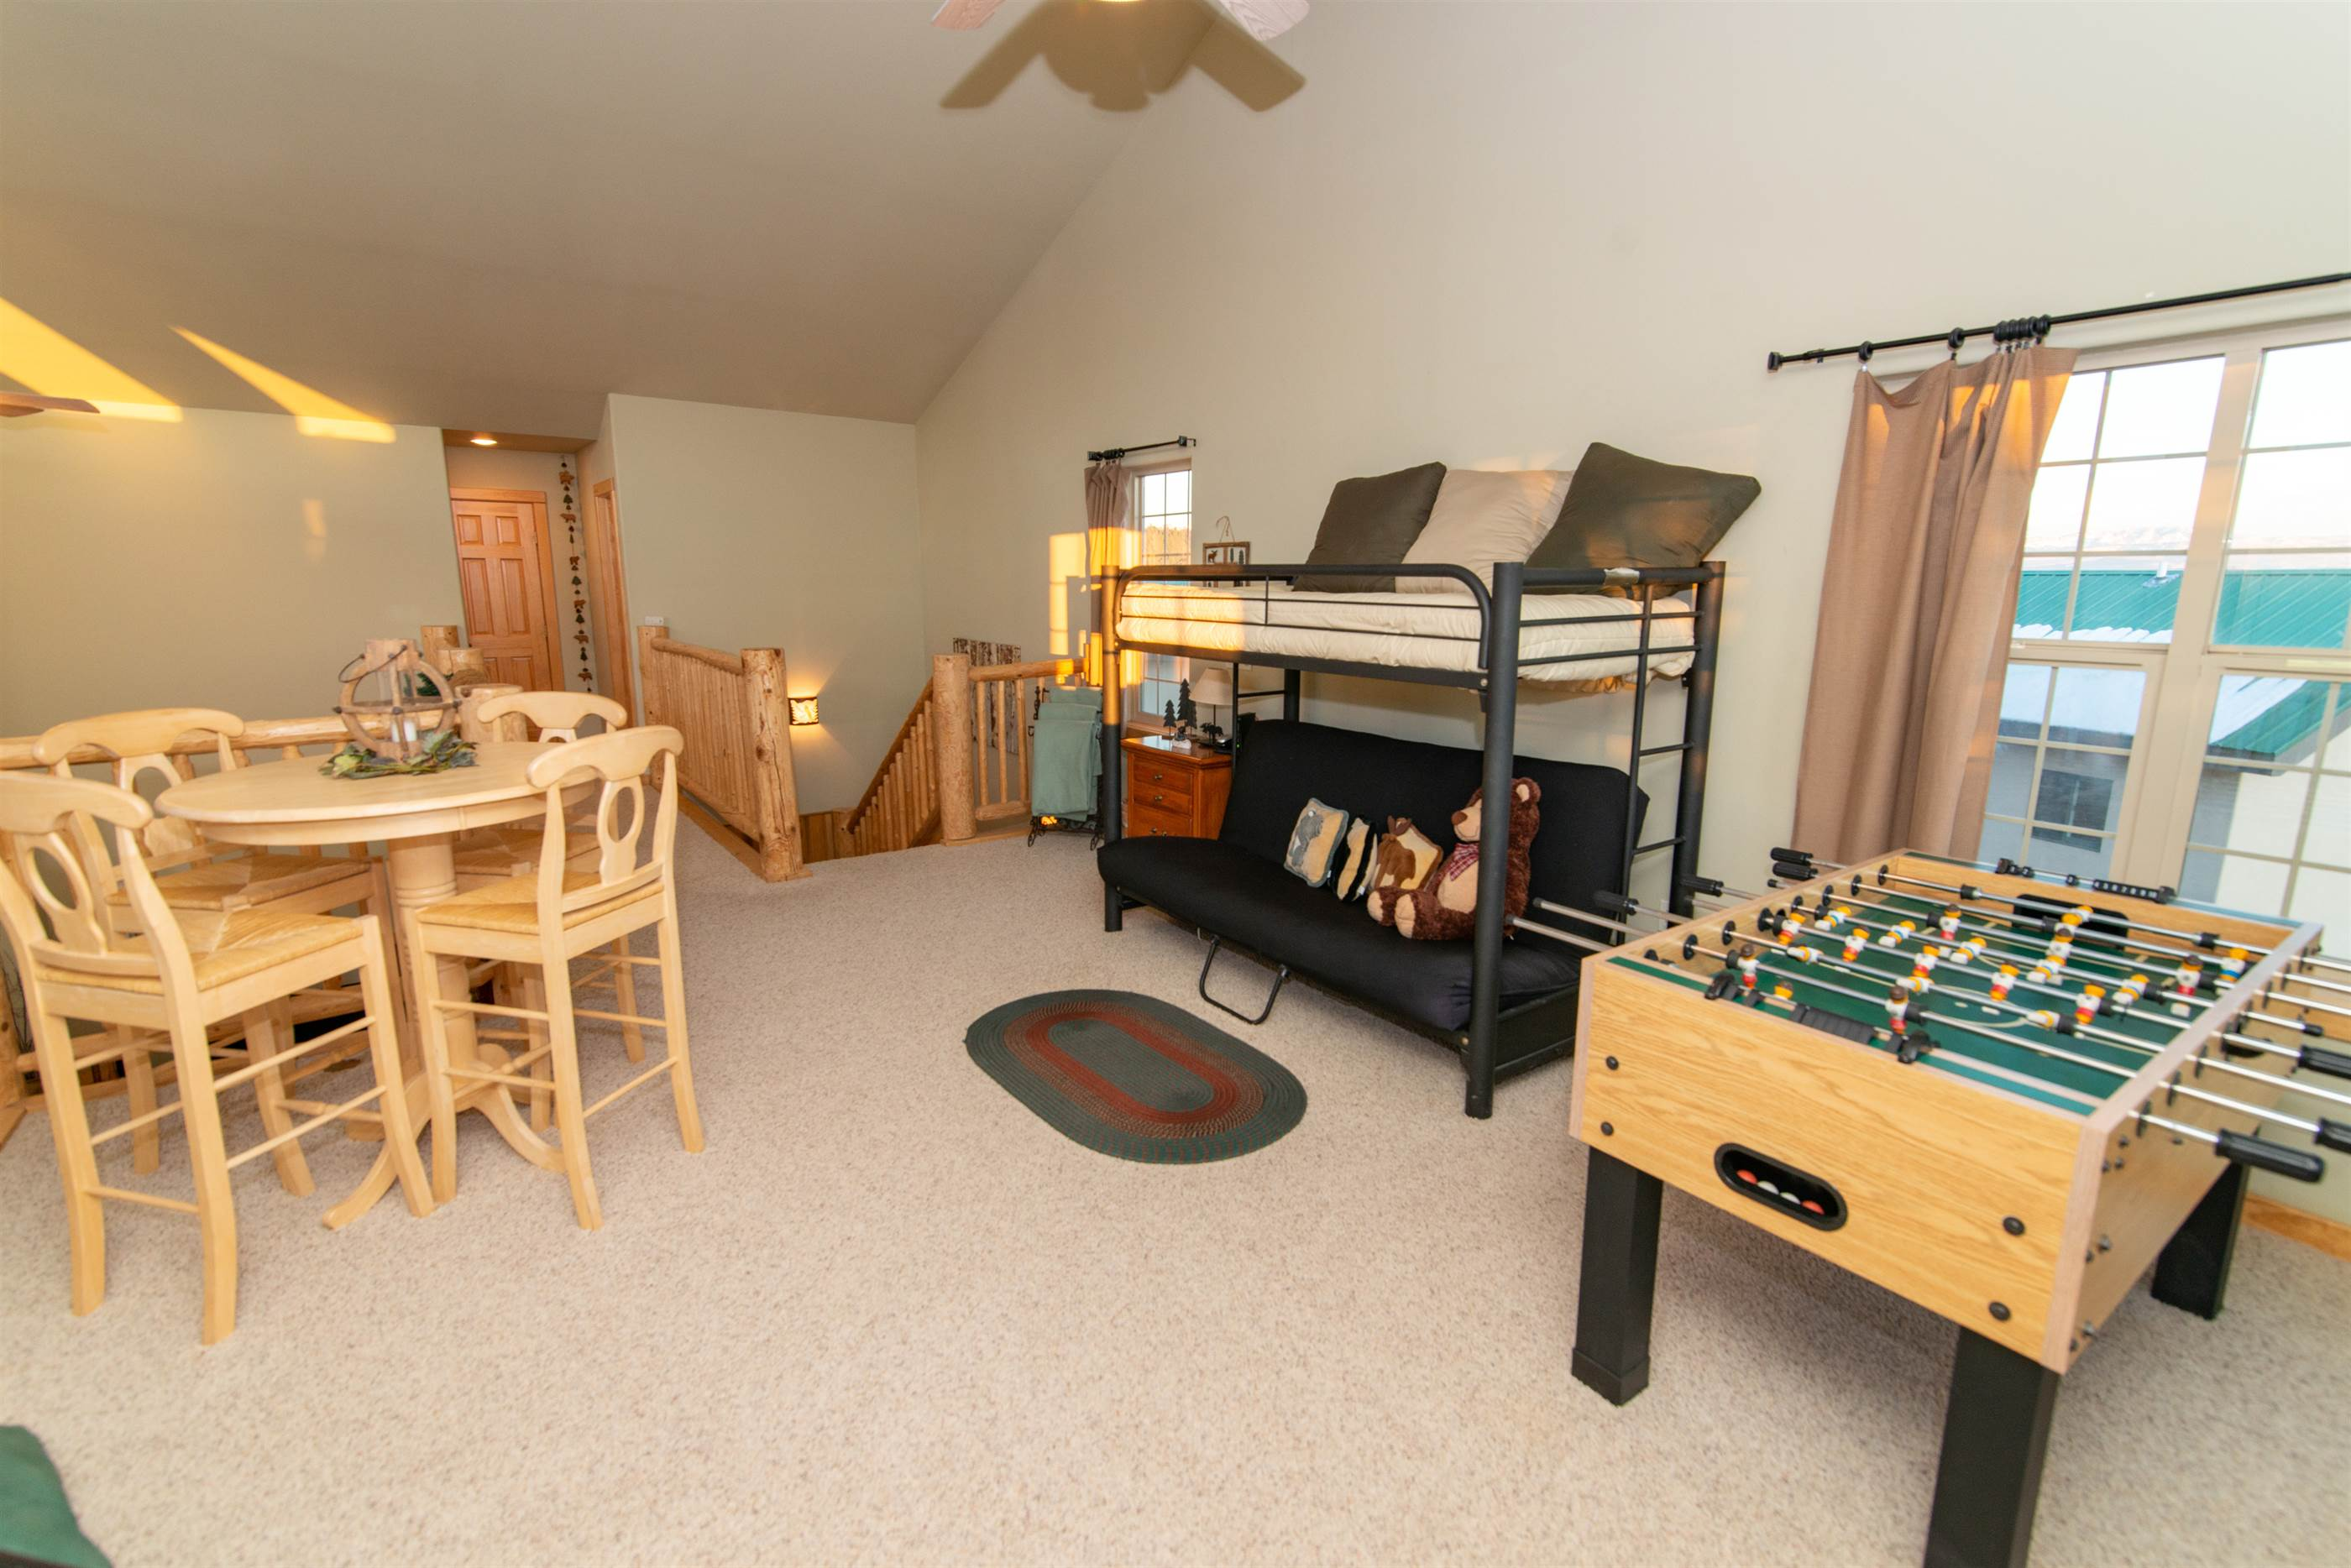 Chestnut's View, #36 Chestnut Ct. - Short Term, Pagosa Springs, CO 81147